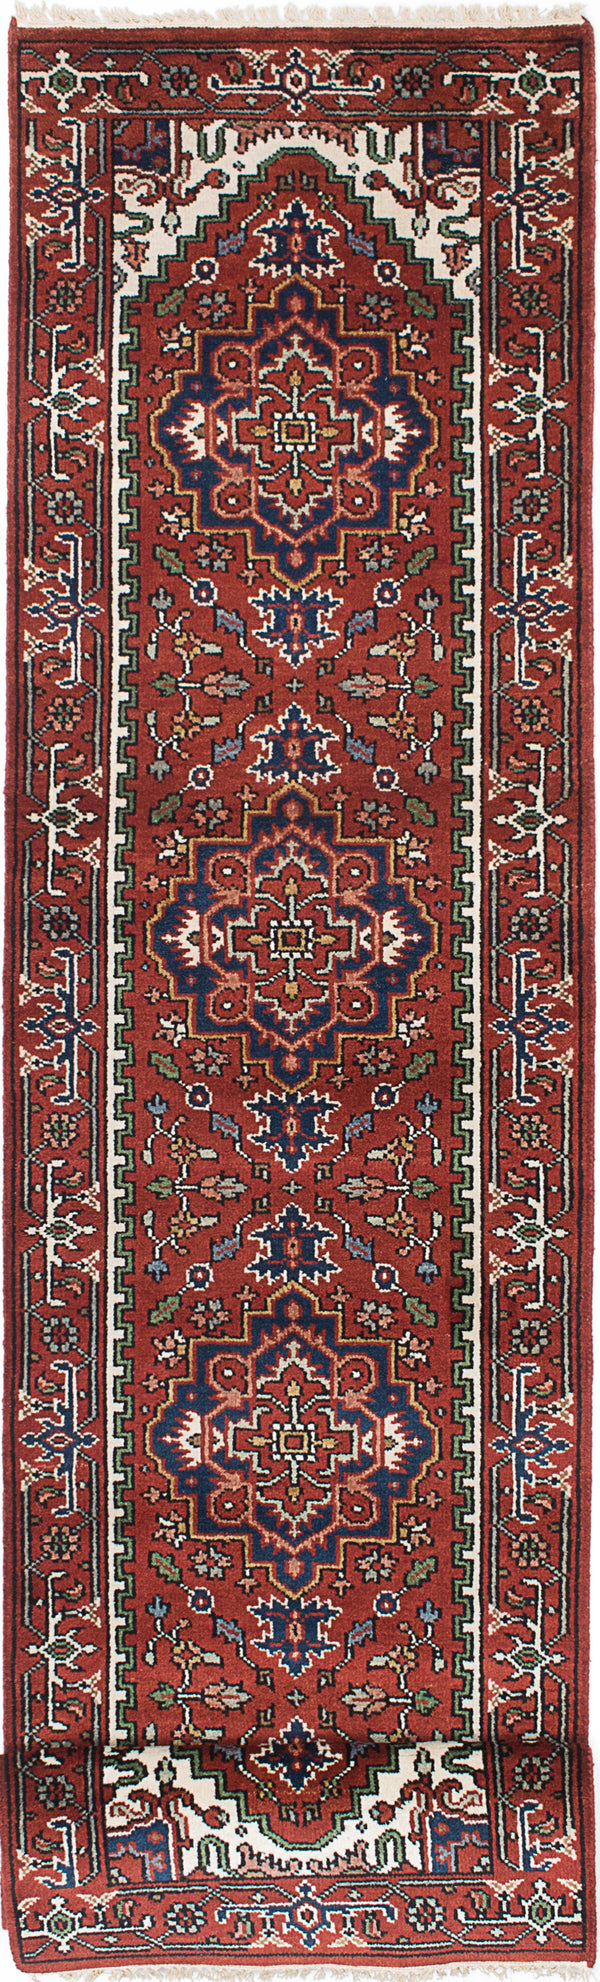 "Hand-knotted Indian Floral  Traditional Serapi-Heritage Runner rug  Dark Orange 2'7 x 10'6"" """